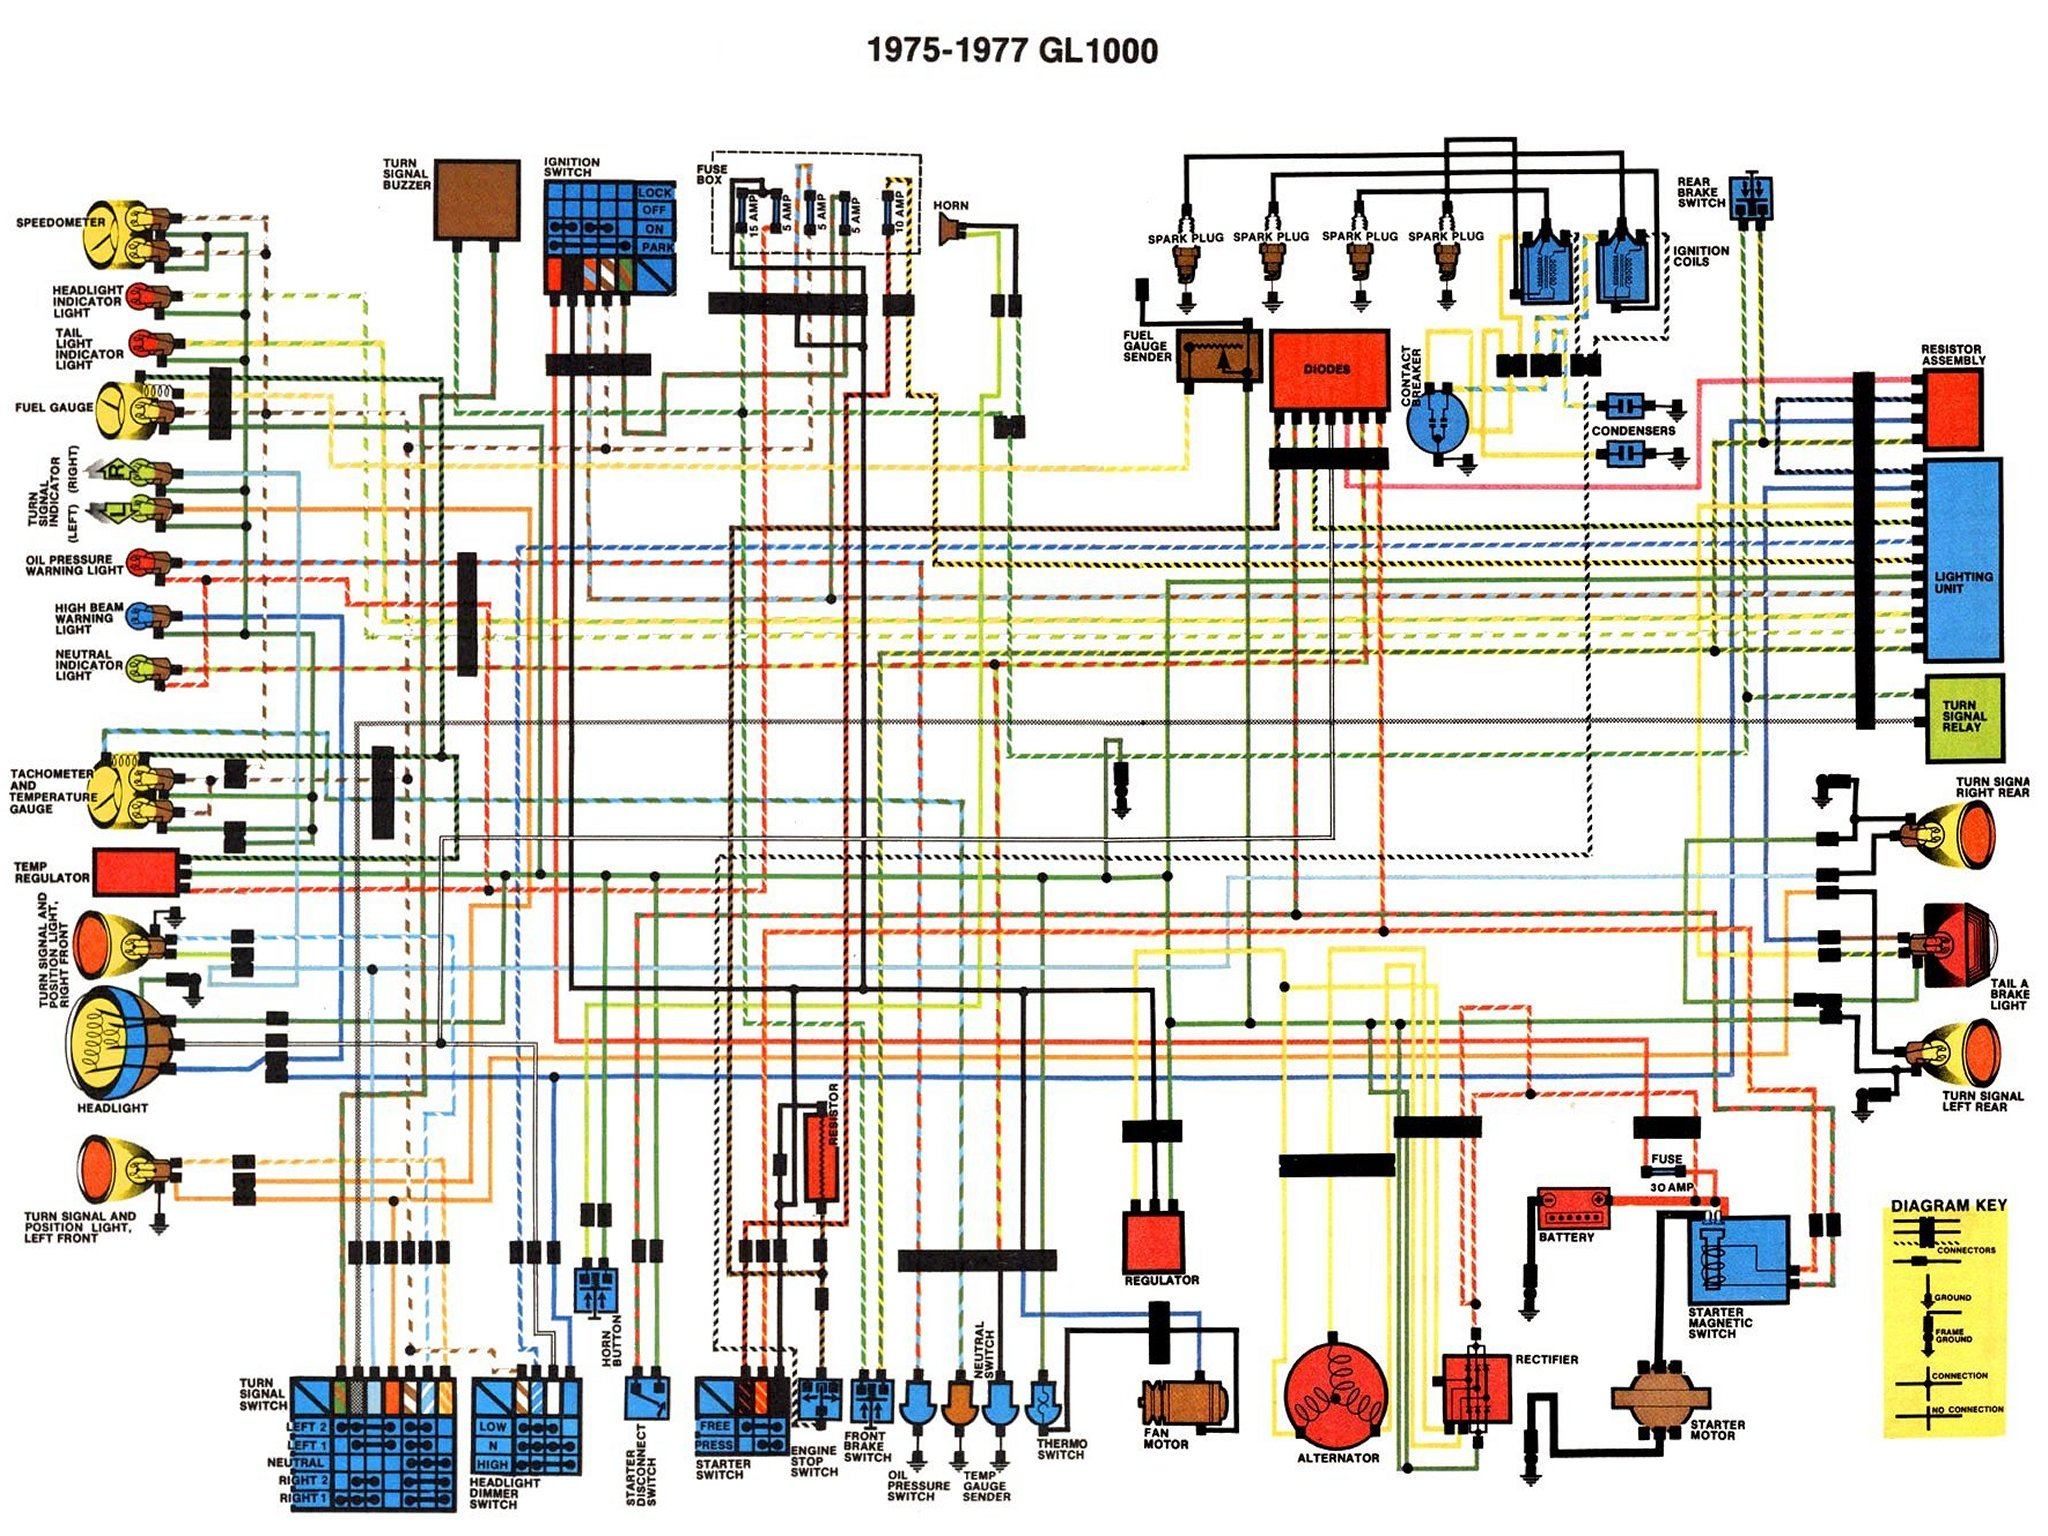 75 Chevy Caprice Wiring Diagram Electrical Diagrams 1975 Impala 1966